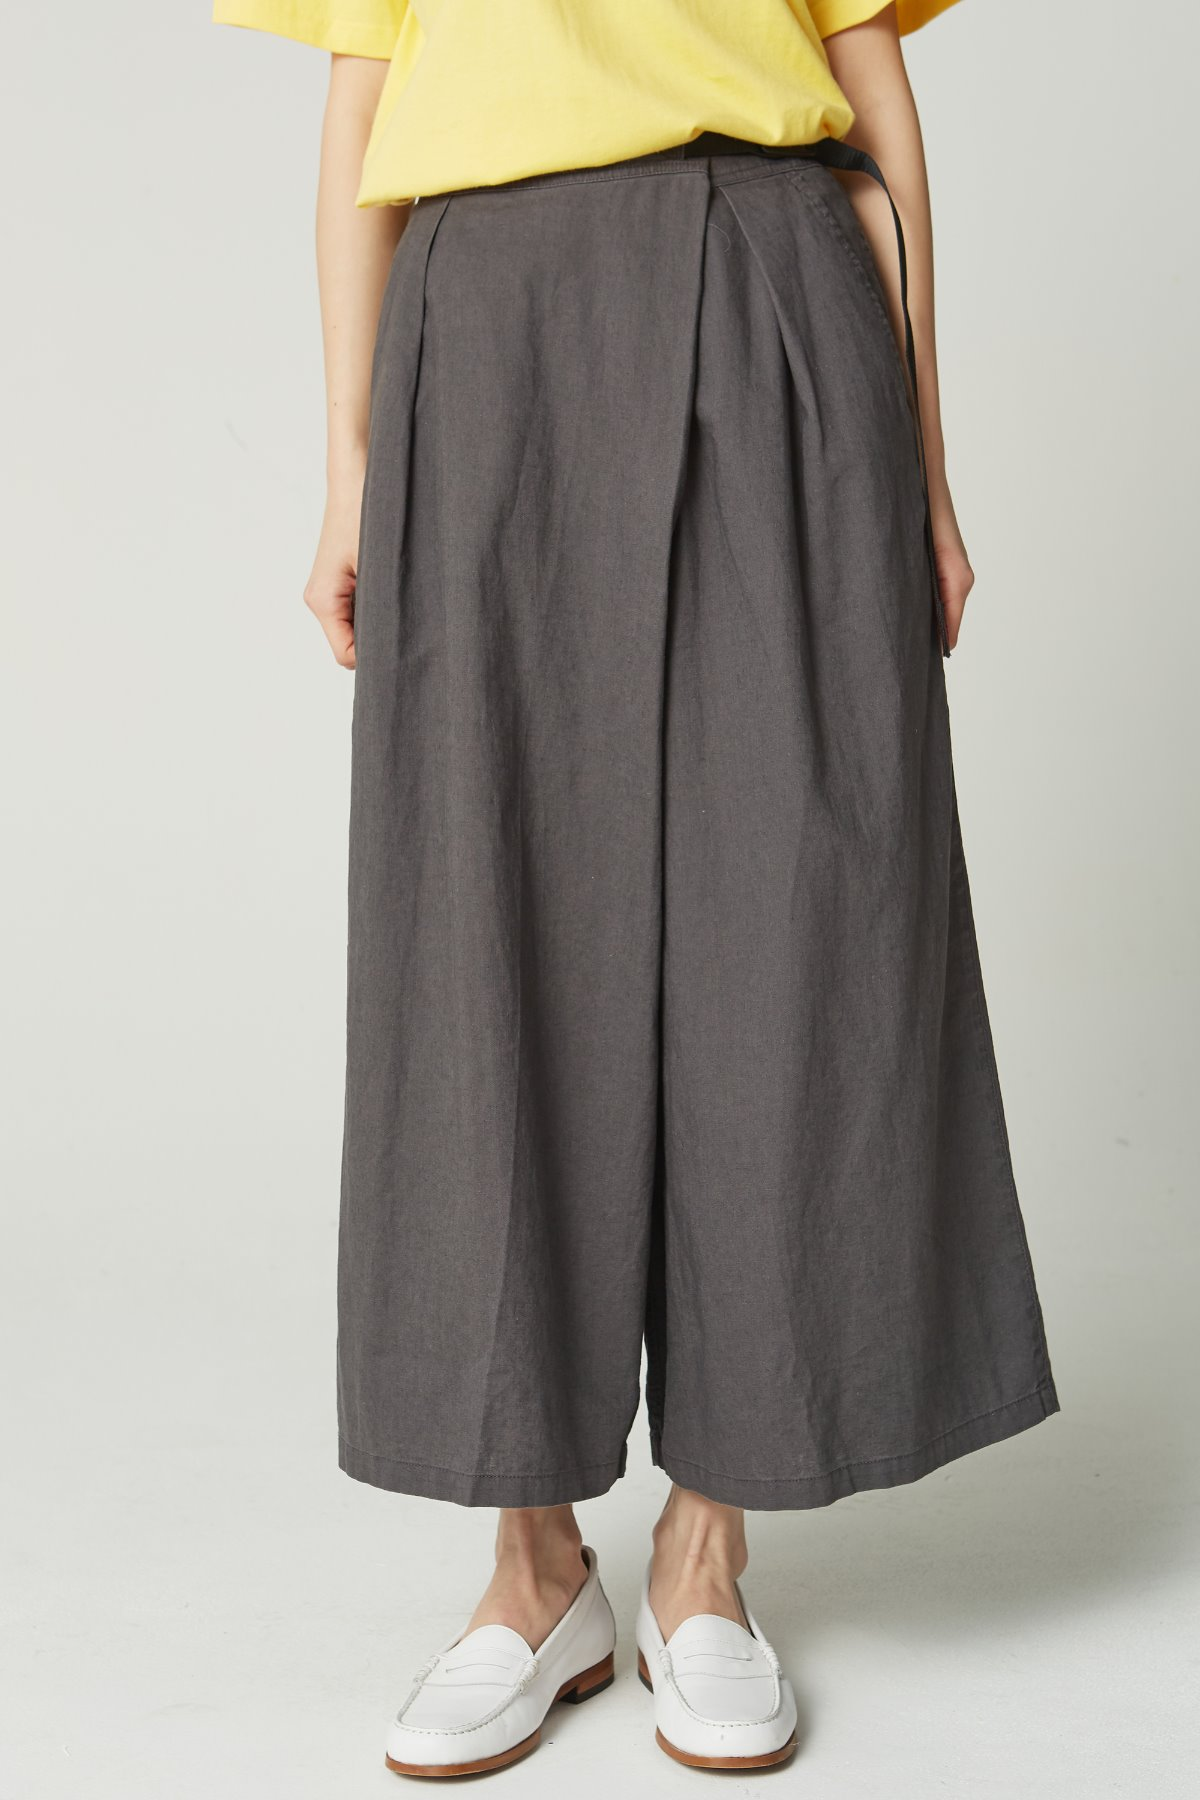 LINEN COTTON WRAP FLARE PANTS CHARCOAL